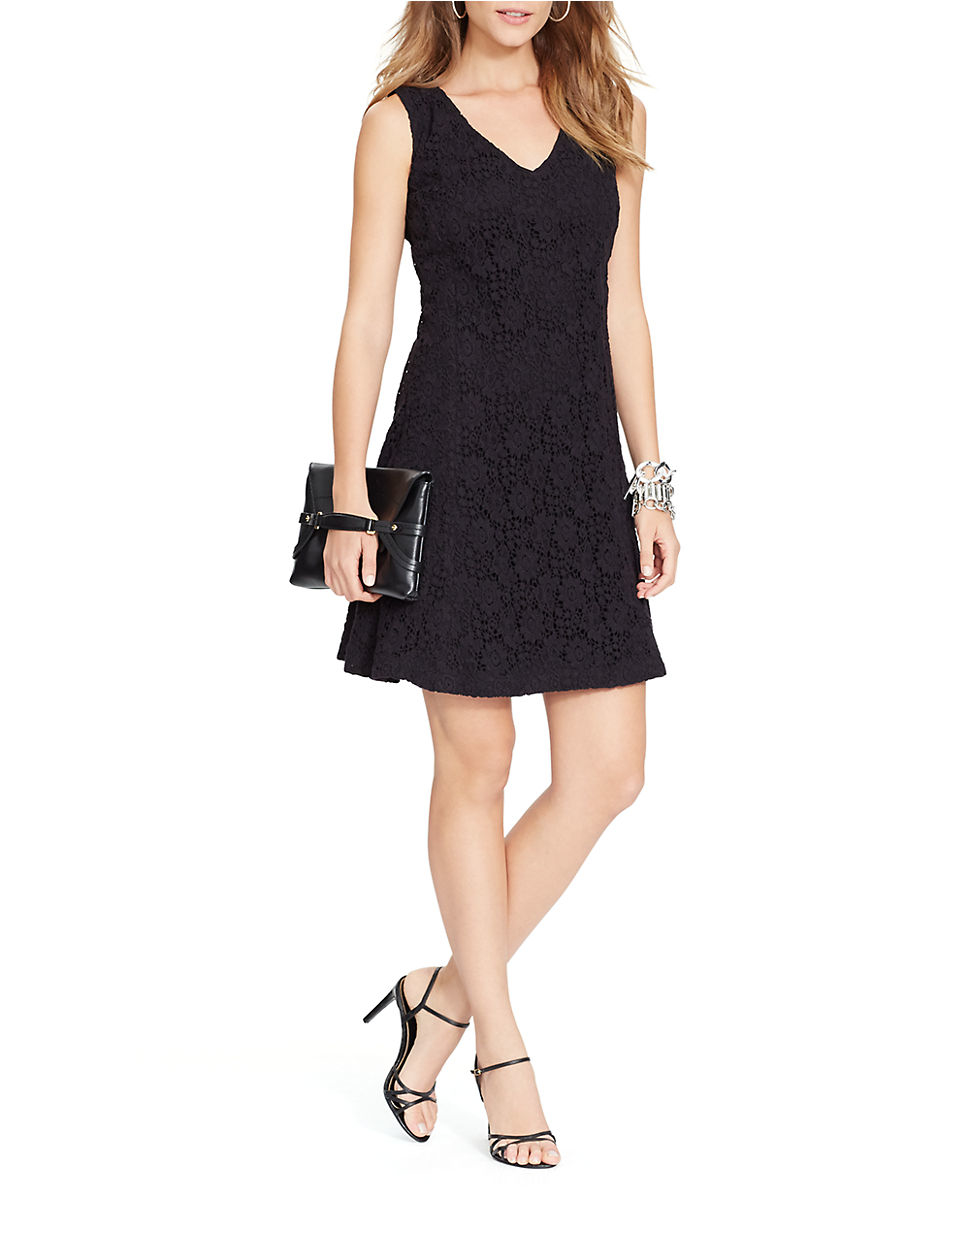 Lulus Exclusive! You'll be collecting notes from secret admirers right and left when you don the Lulus Love Poem Black Lace Dress! A lively pattern of floral lace creates an eye-catching overlay atop knit fabric. Halter neckline and darted sleeveless bodice transition into a chic, sheath skirt /5(K).